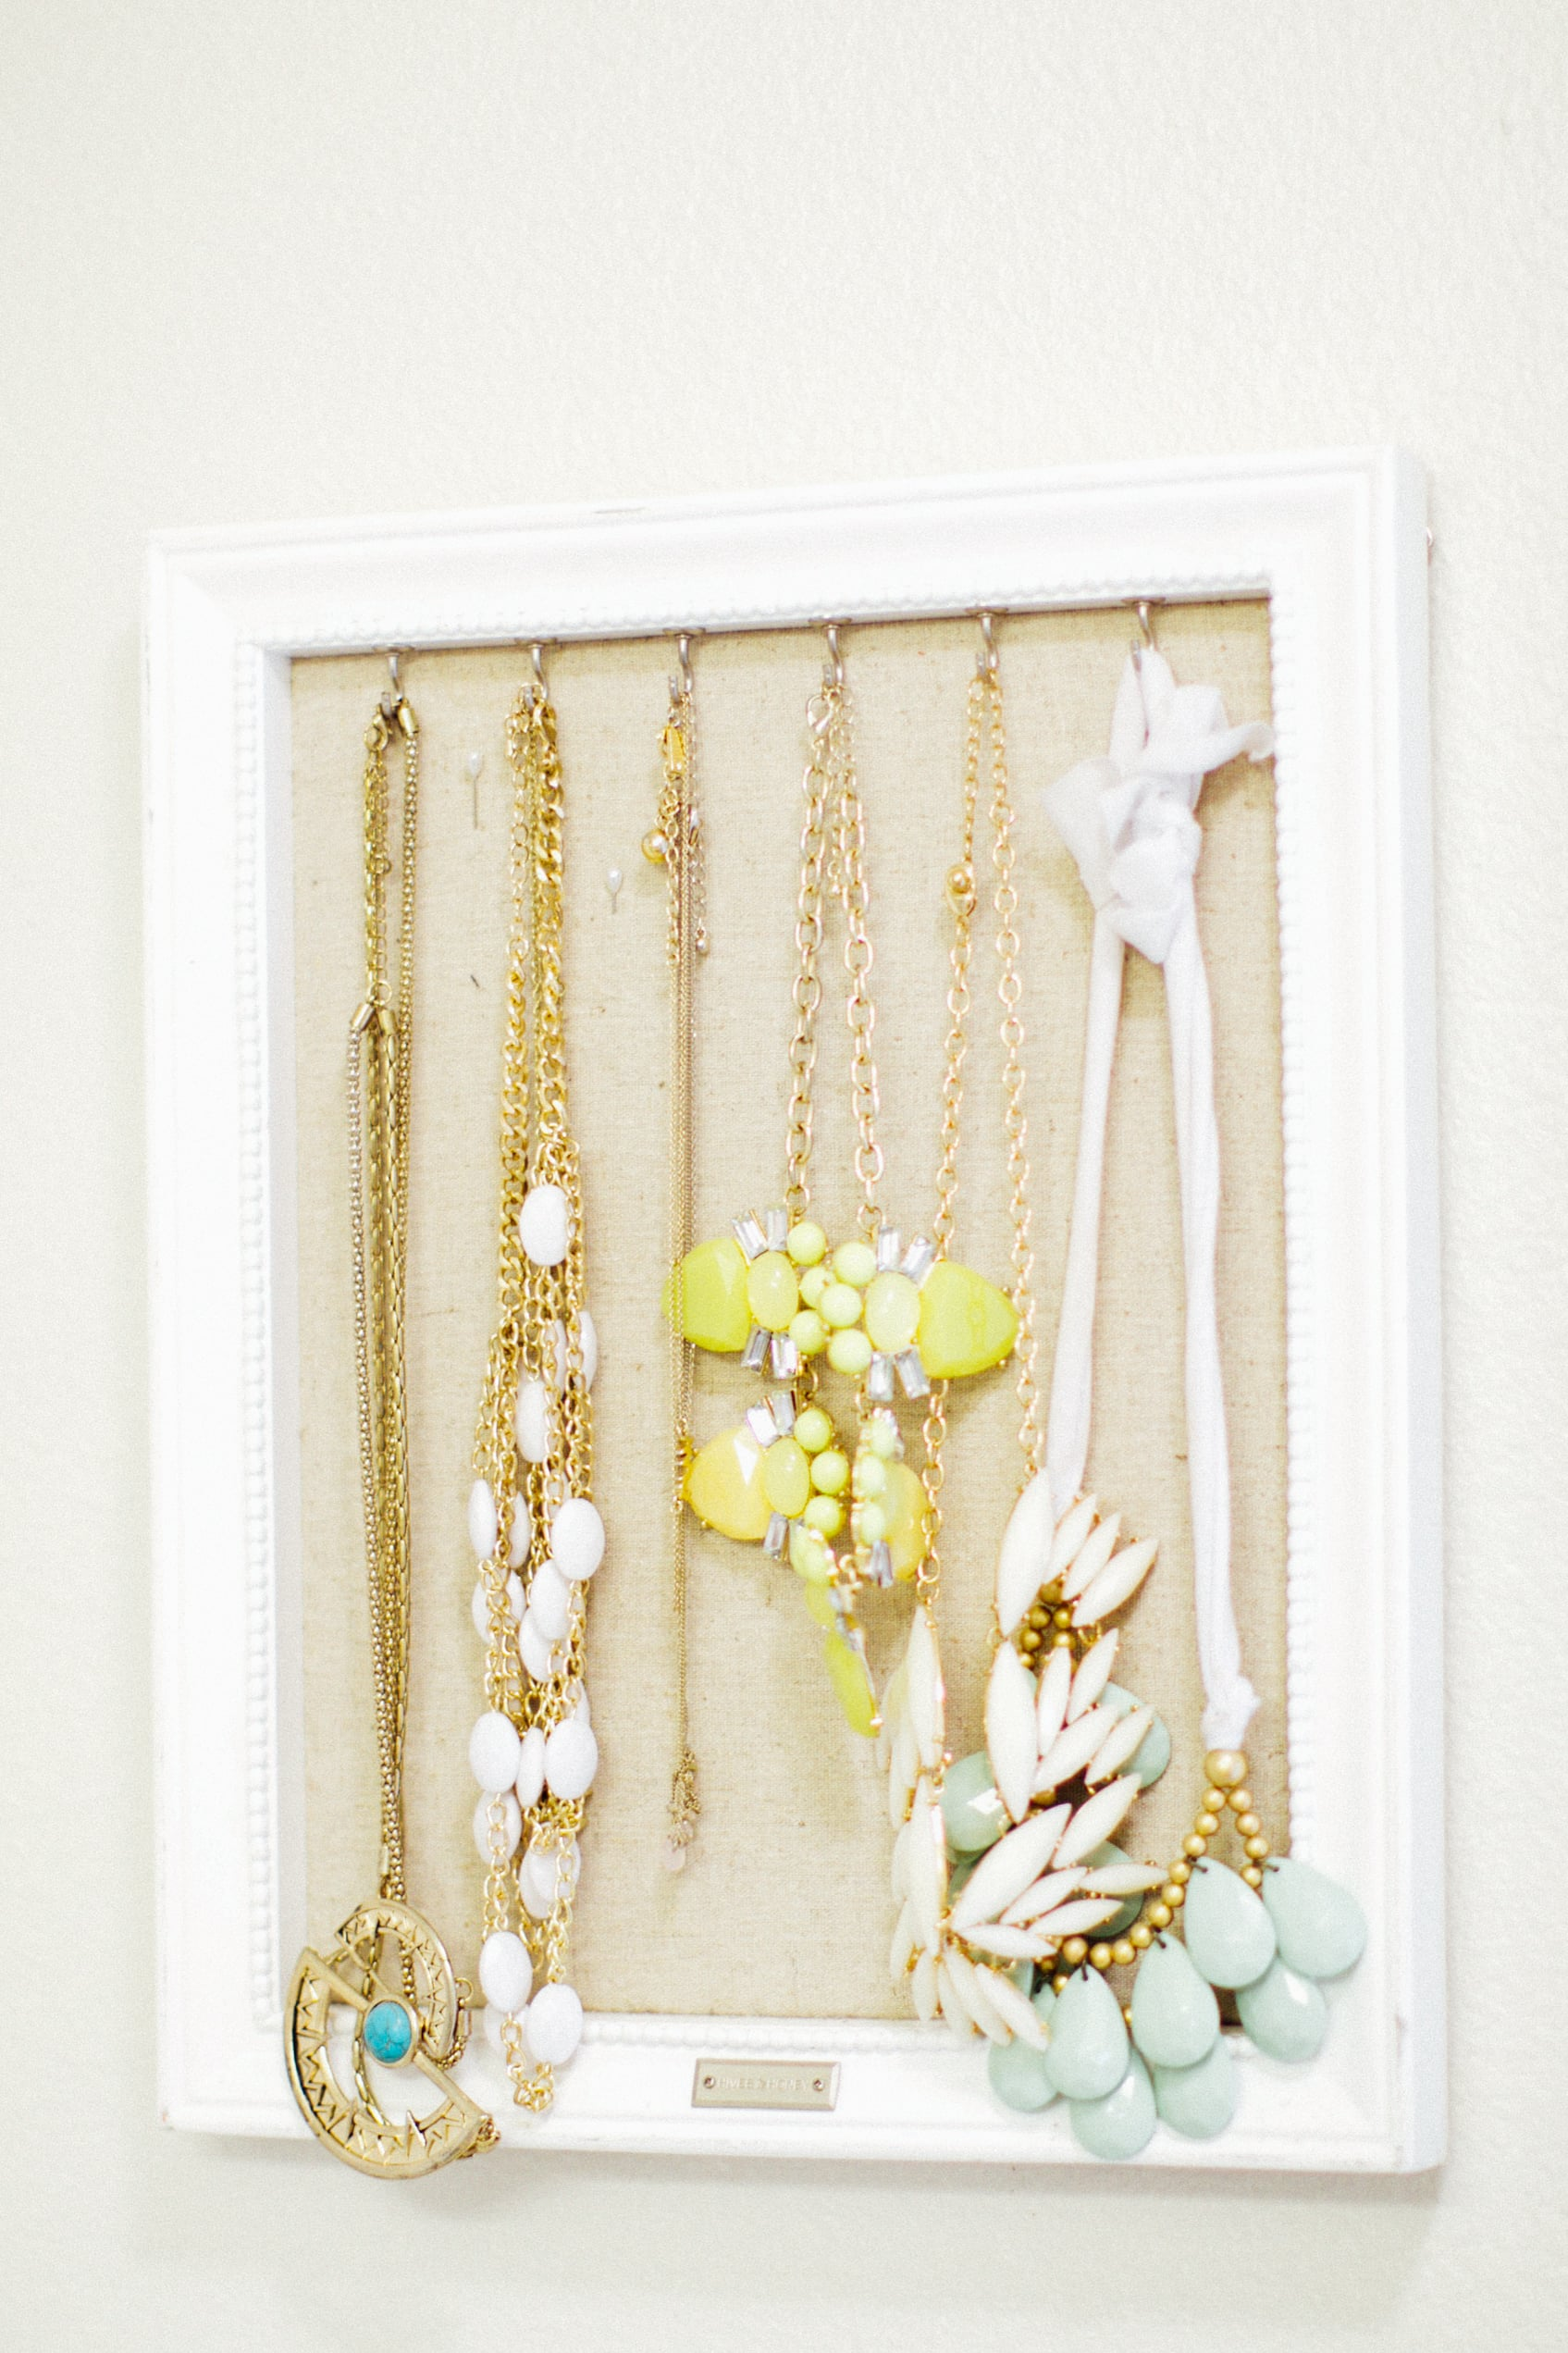 One of my jewelry organizers that hangs on the bathroom wall. I got it at francesca's this past summer! I just adore seeing all my necklaces organized instead of tangled up! These necklaces are from J.Crew and Forever 21 but are older so not listed -- linked some similar below! THe green one on the right is from my friend CArrie Grace's shop! And the white one is from Wal Mart (of all places!) but guess what? wal mart is like the world' best kept secret on stylish costume jewelry. Seriously, $2 earrings. You'll thank me later.